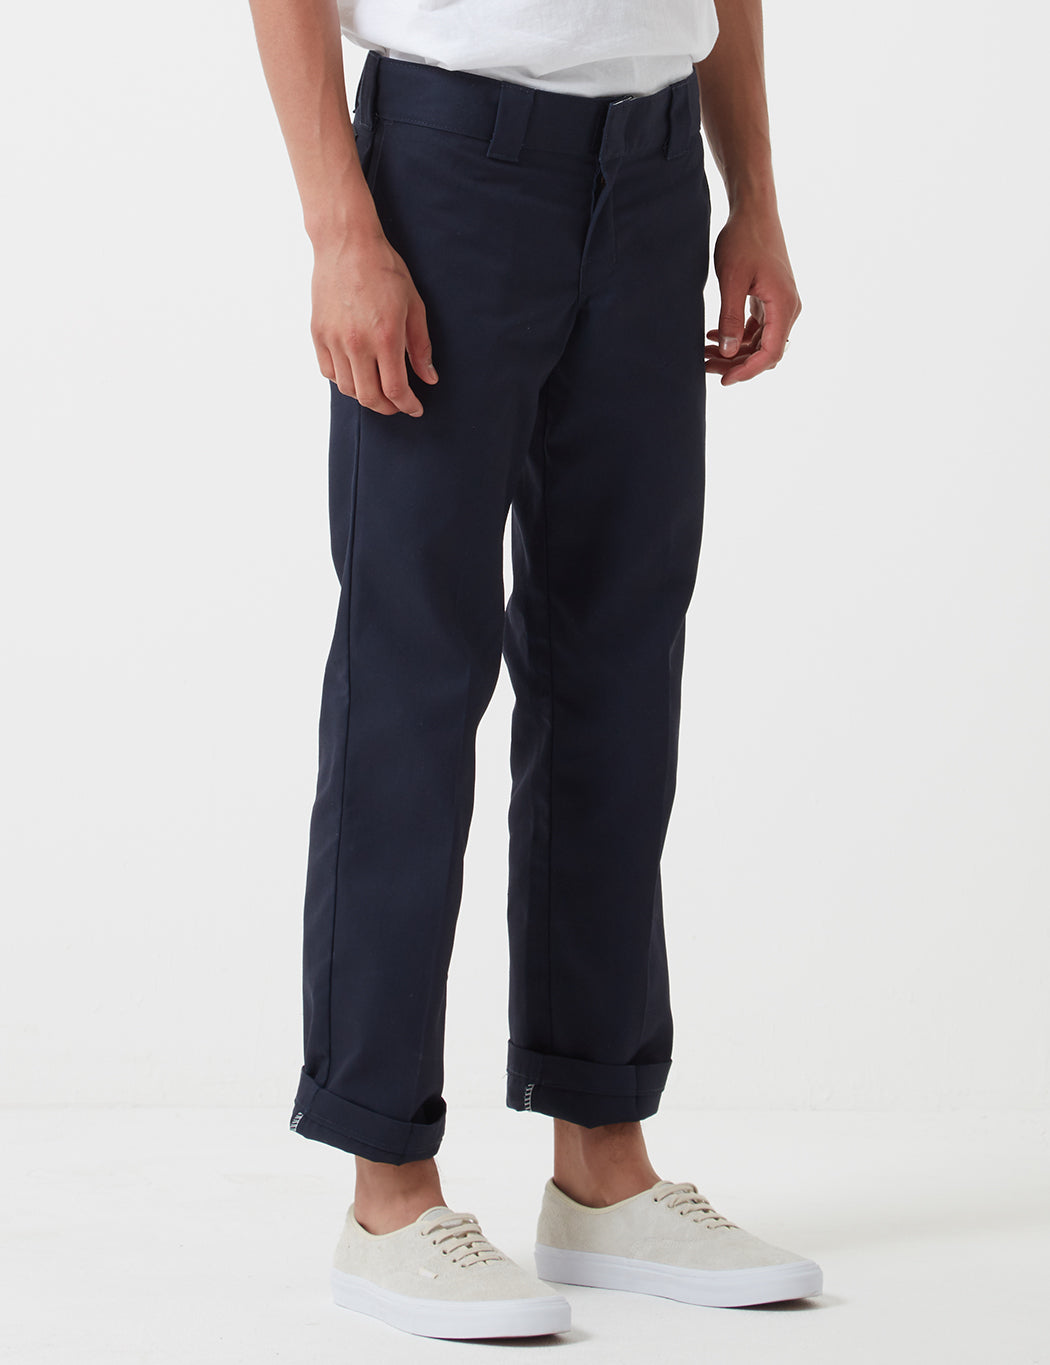 Dickies 873 Work Pant (Slim Straight) - Dark Navy